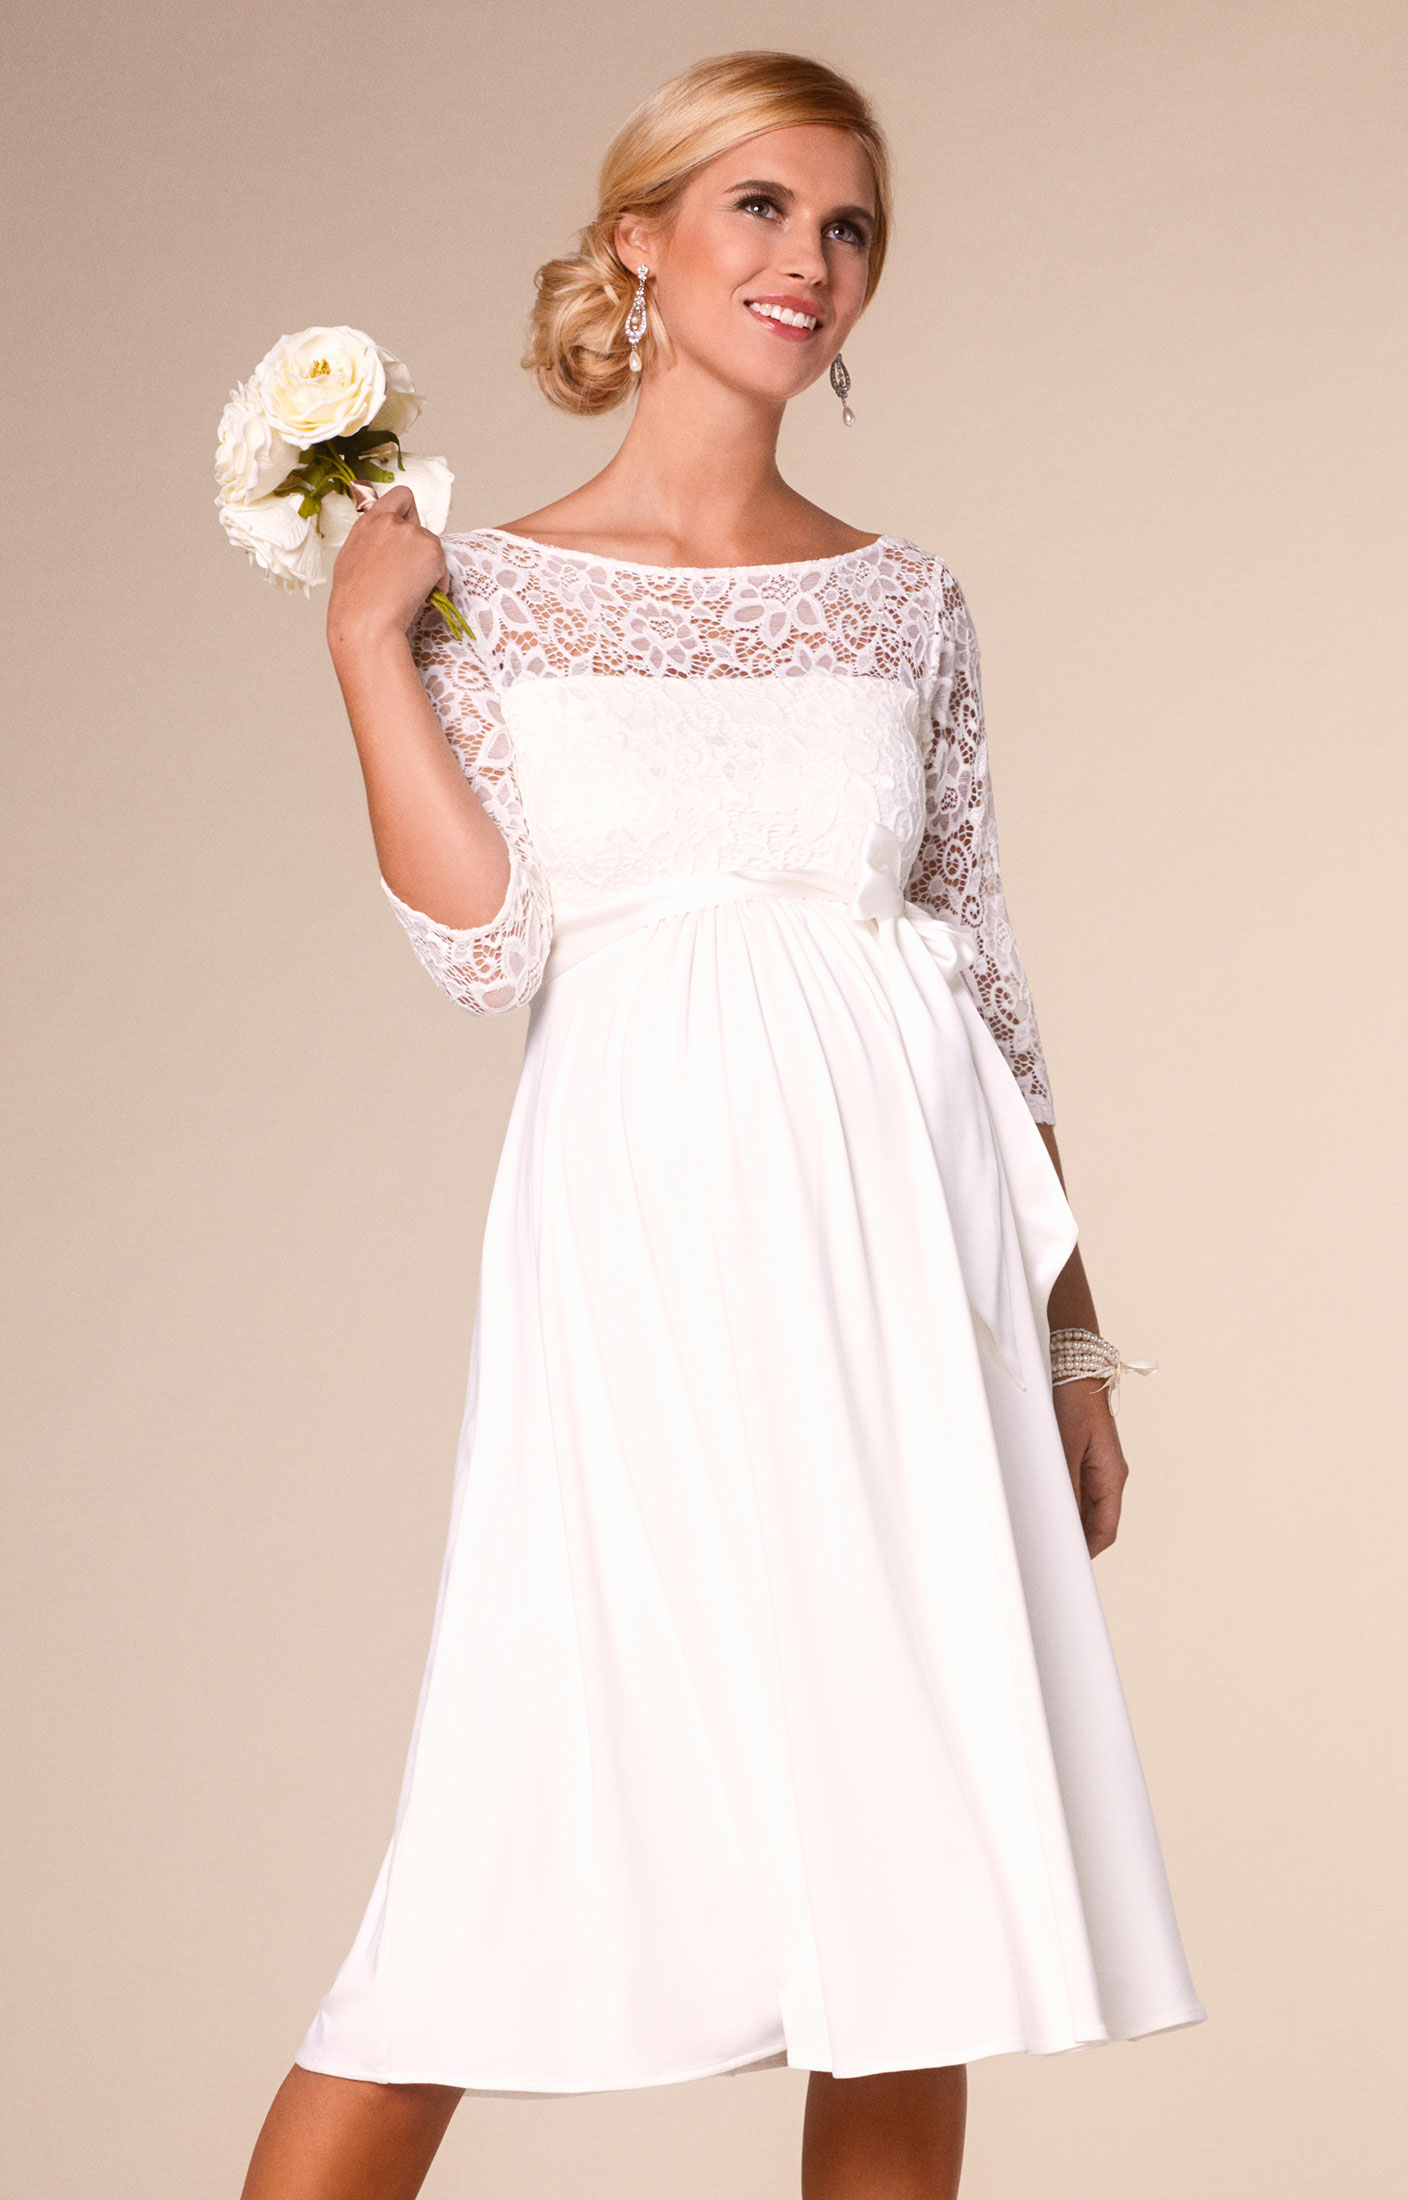 Kleid Lucia | Tiffany rose, Ivory and Wedding dress